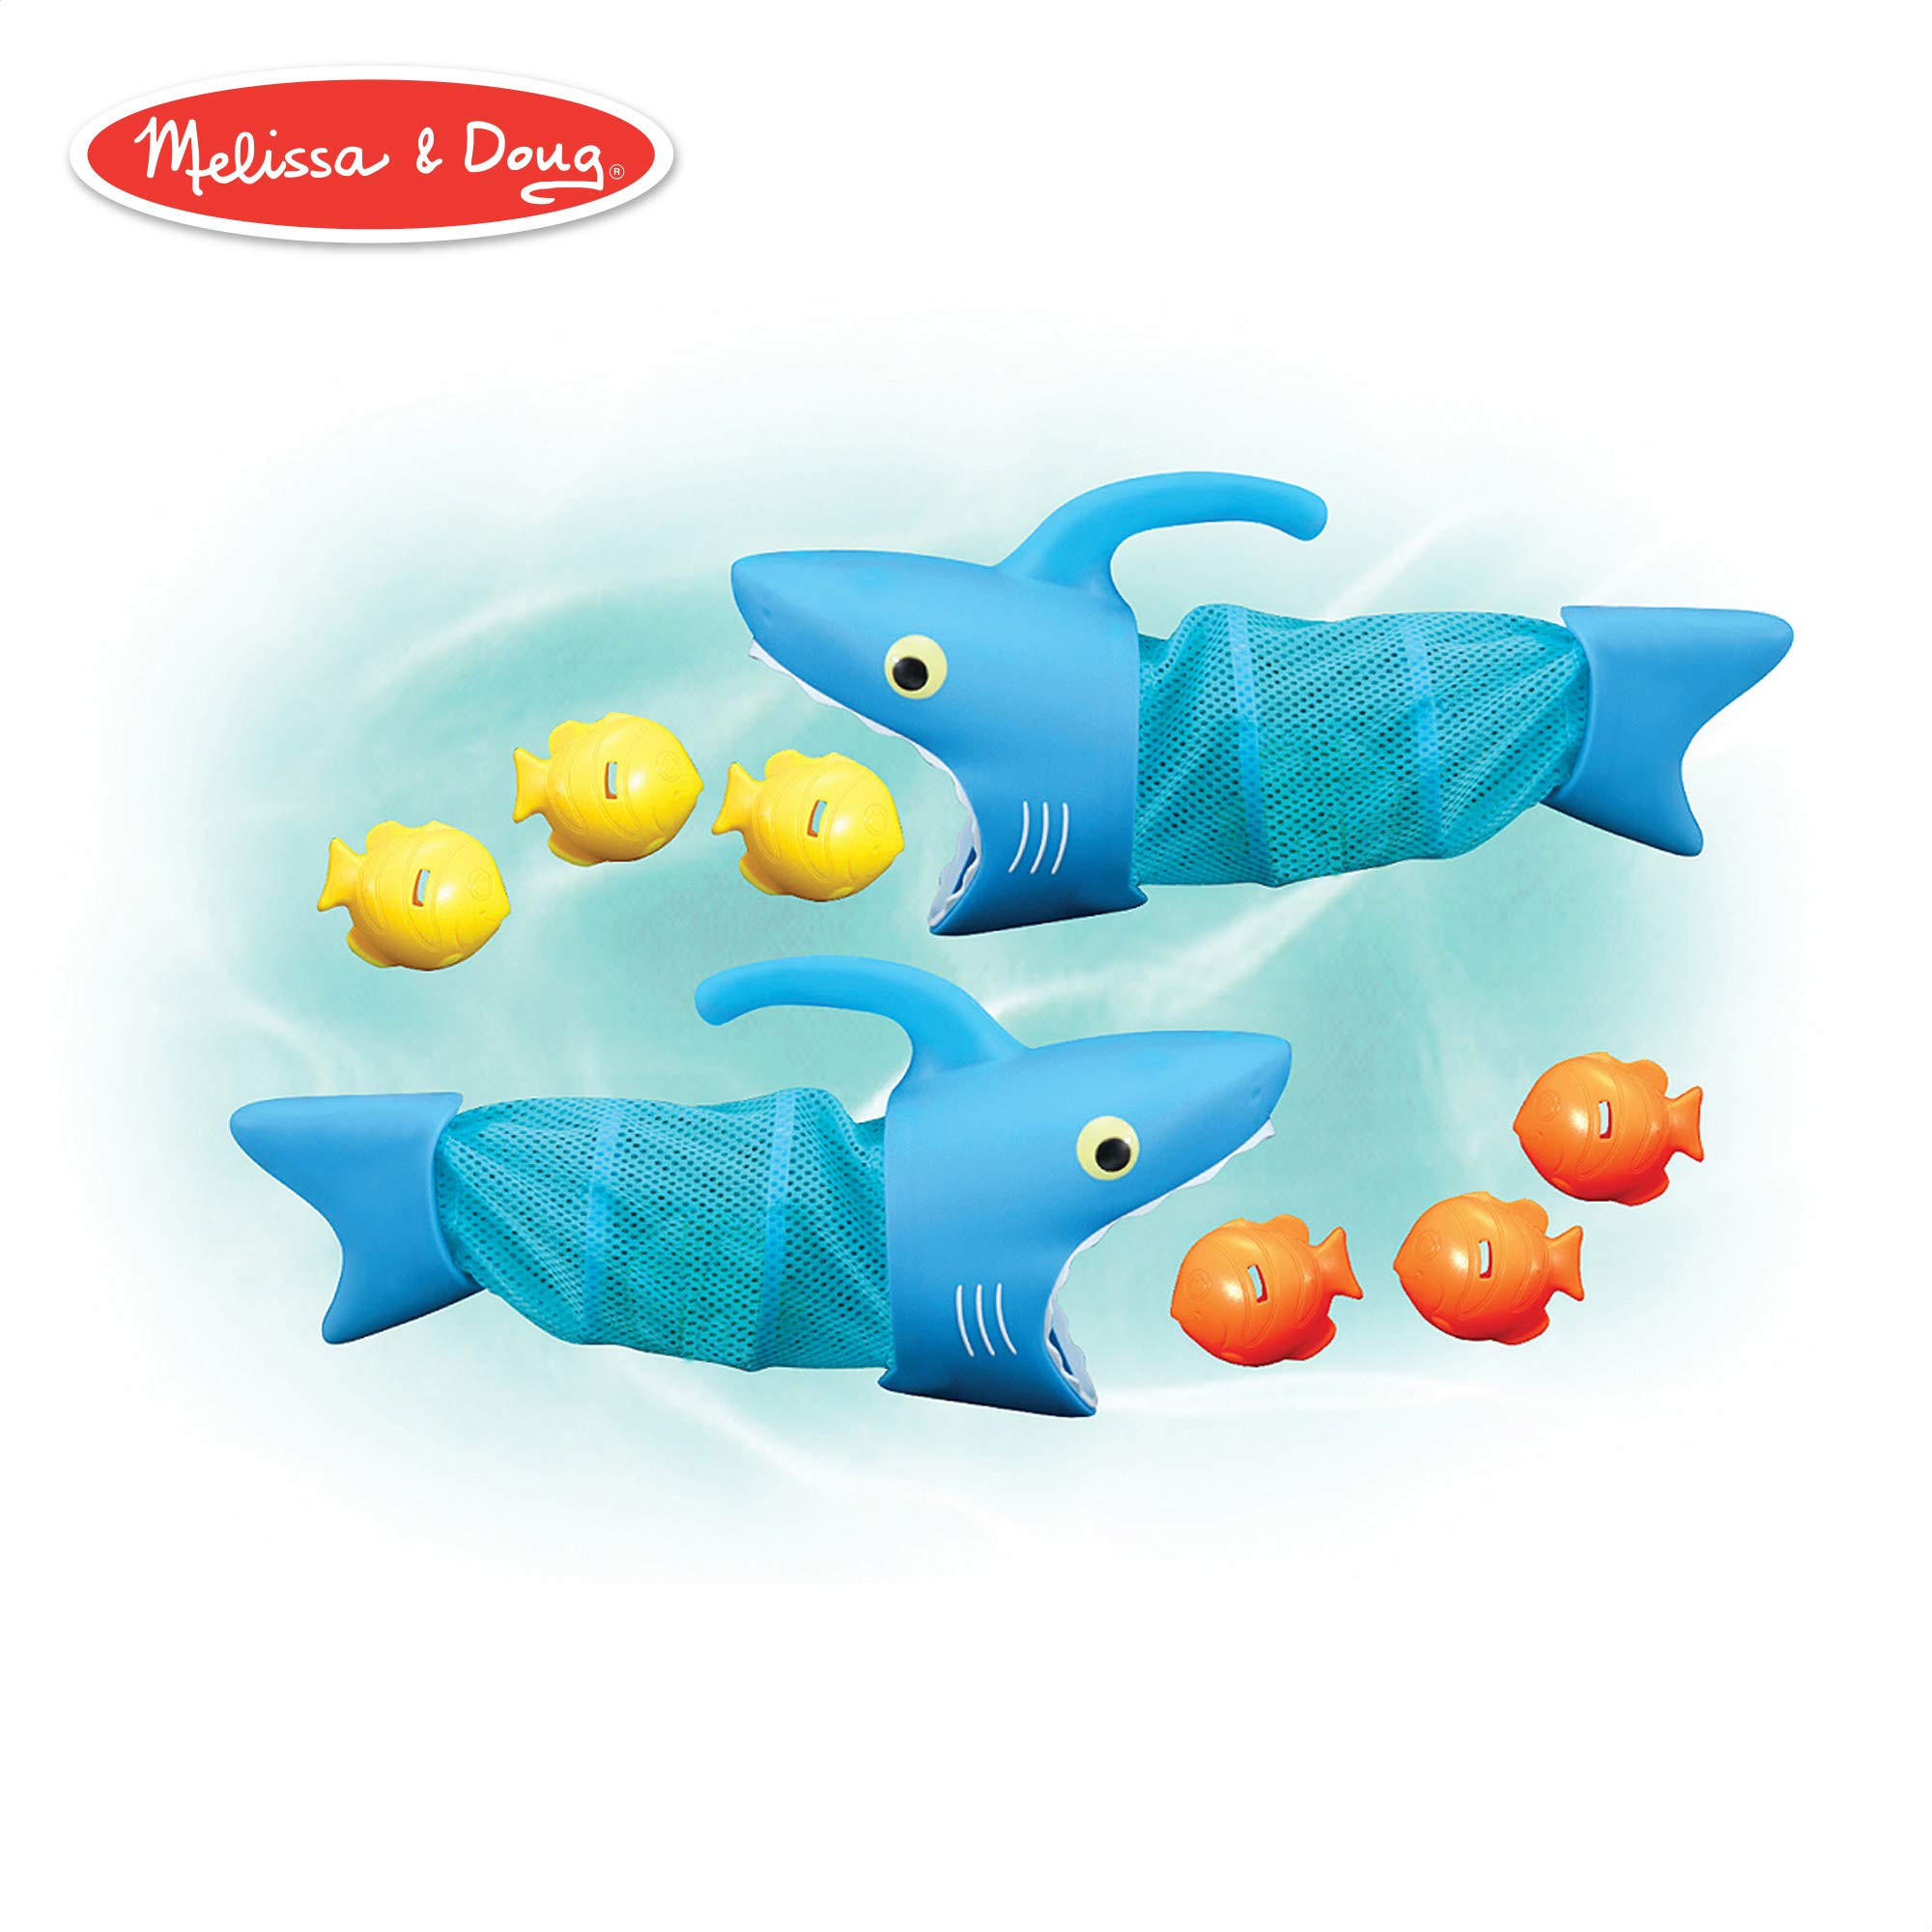 Melissa & Doug Sunny Patch Spark Shark Fish Hunt (Pool Game, 2 Nets, 6 Fish Sinkers  to Catch) by Melissa & Doug